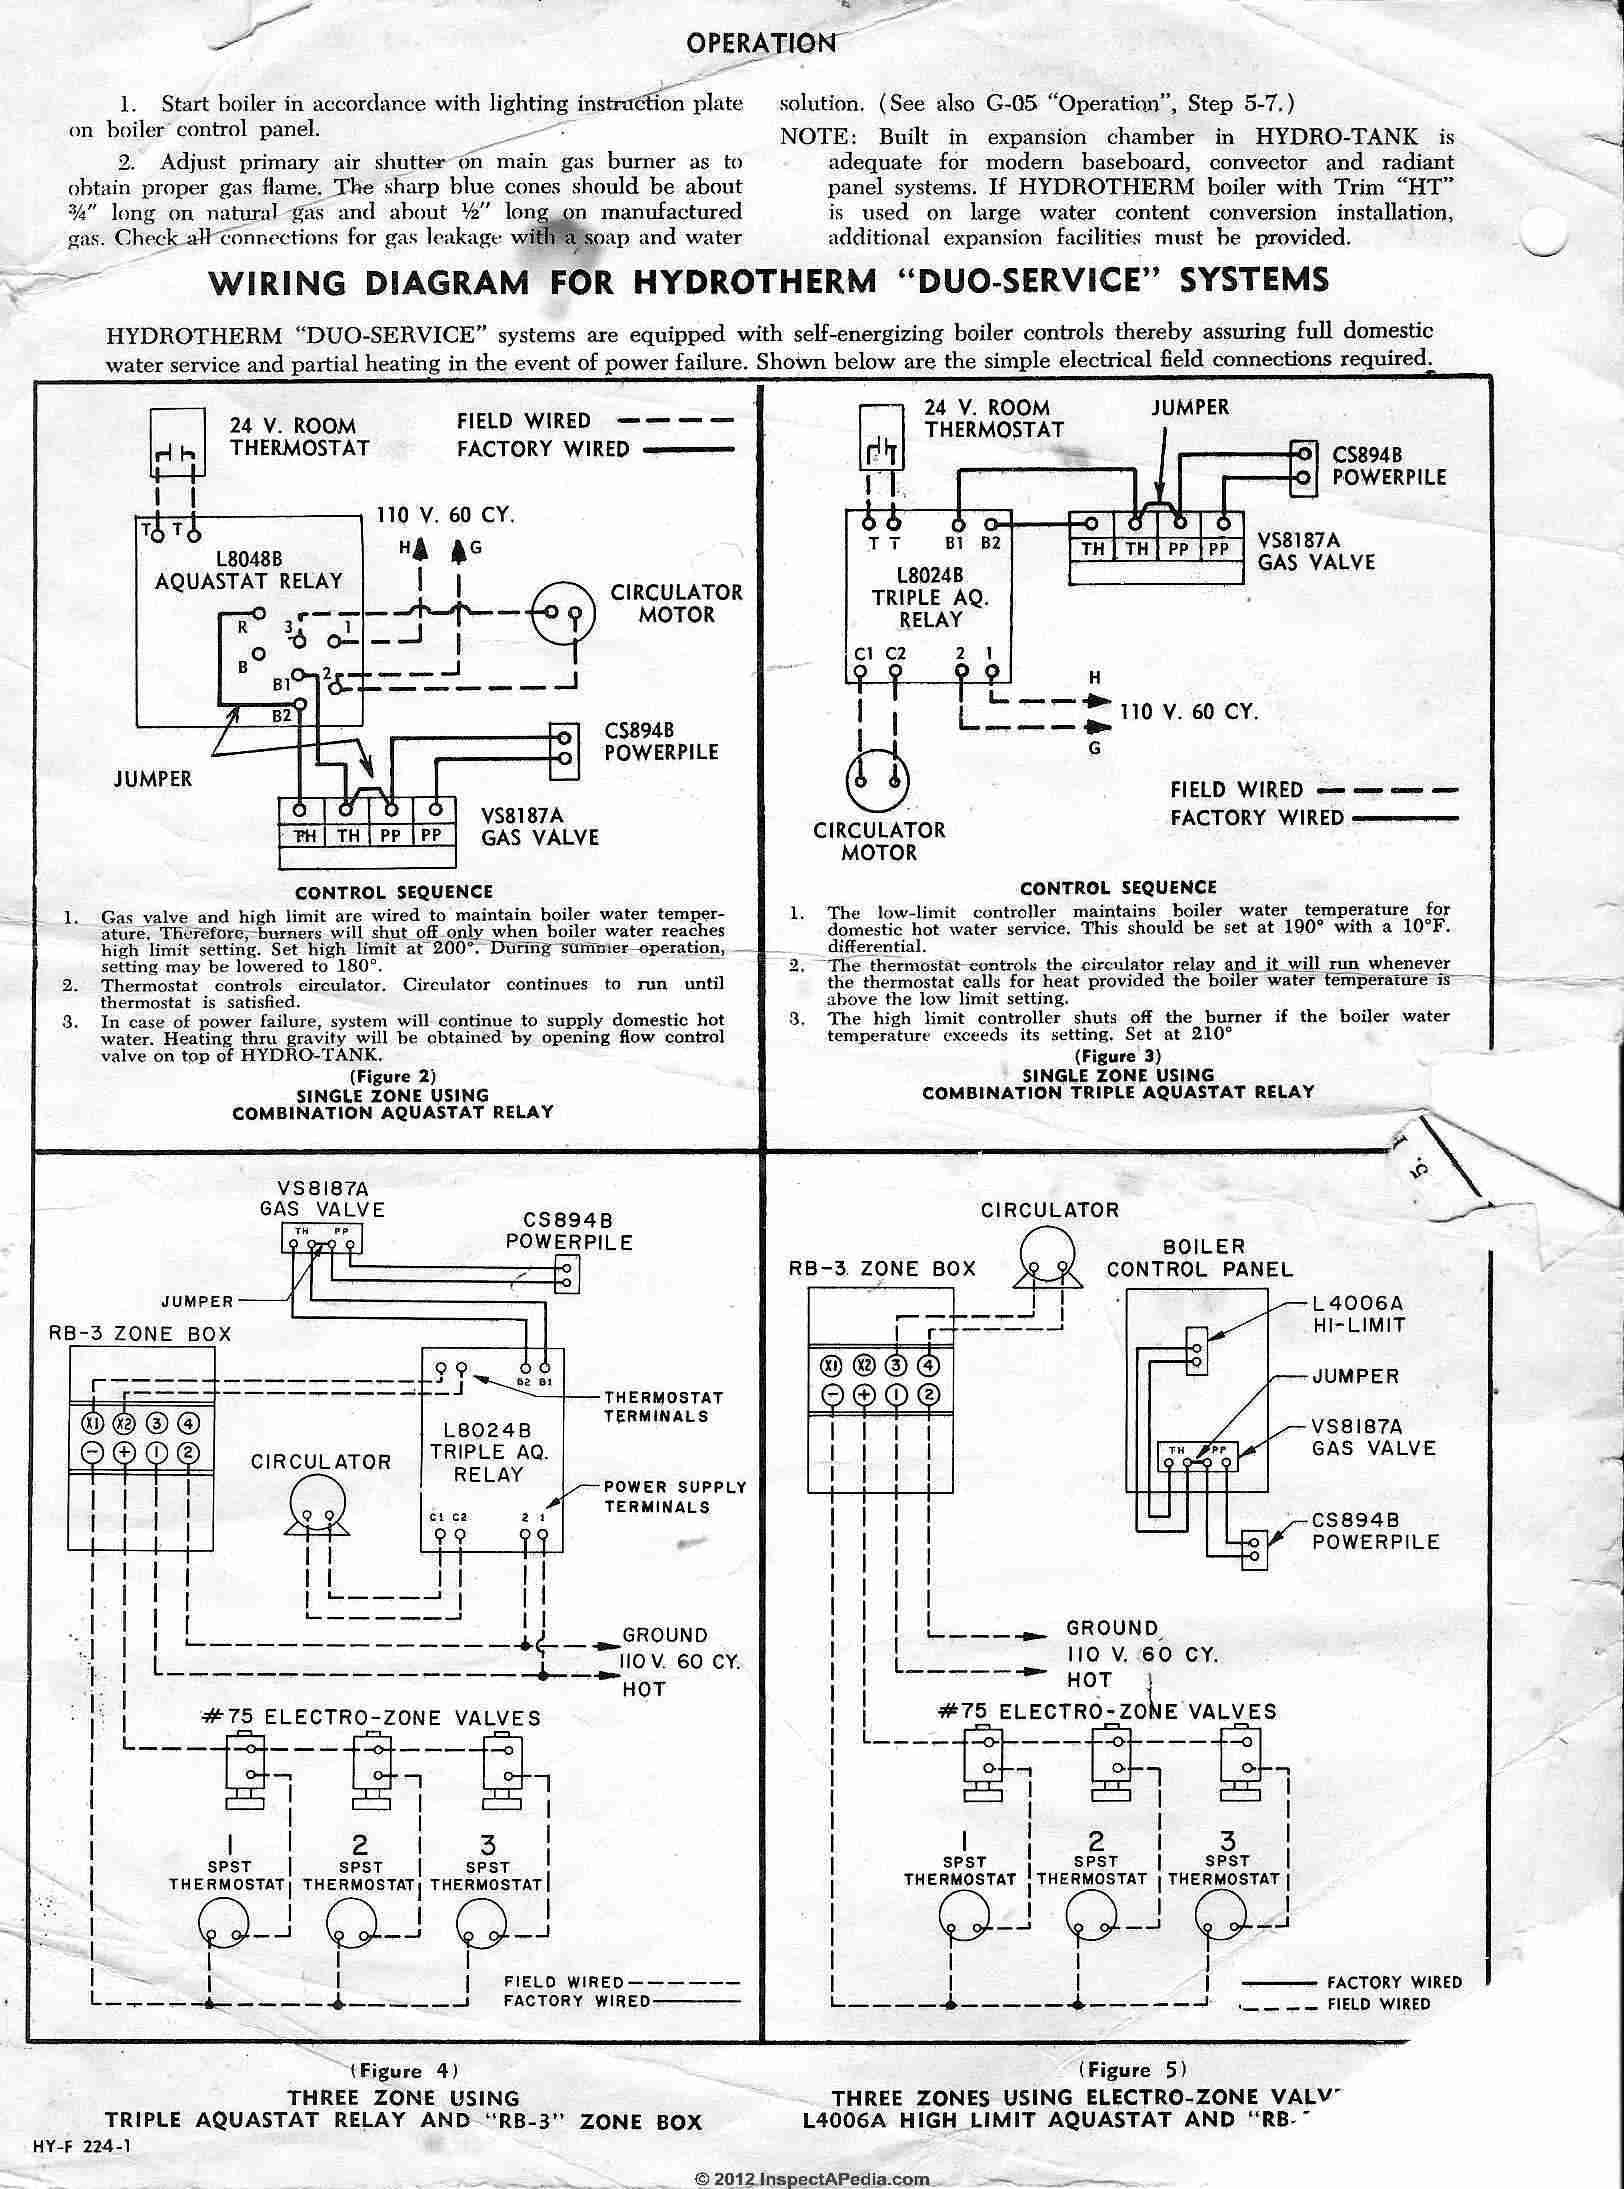 industrial gas boiler wiring diagram wiring diagram rh 93 tempoturn de